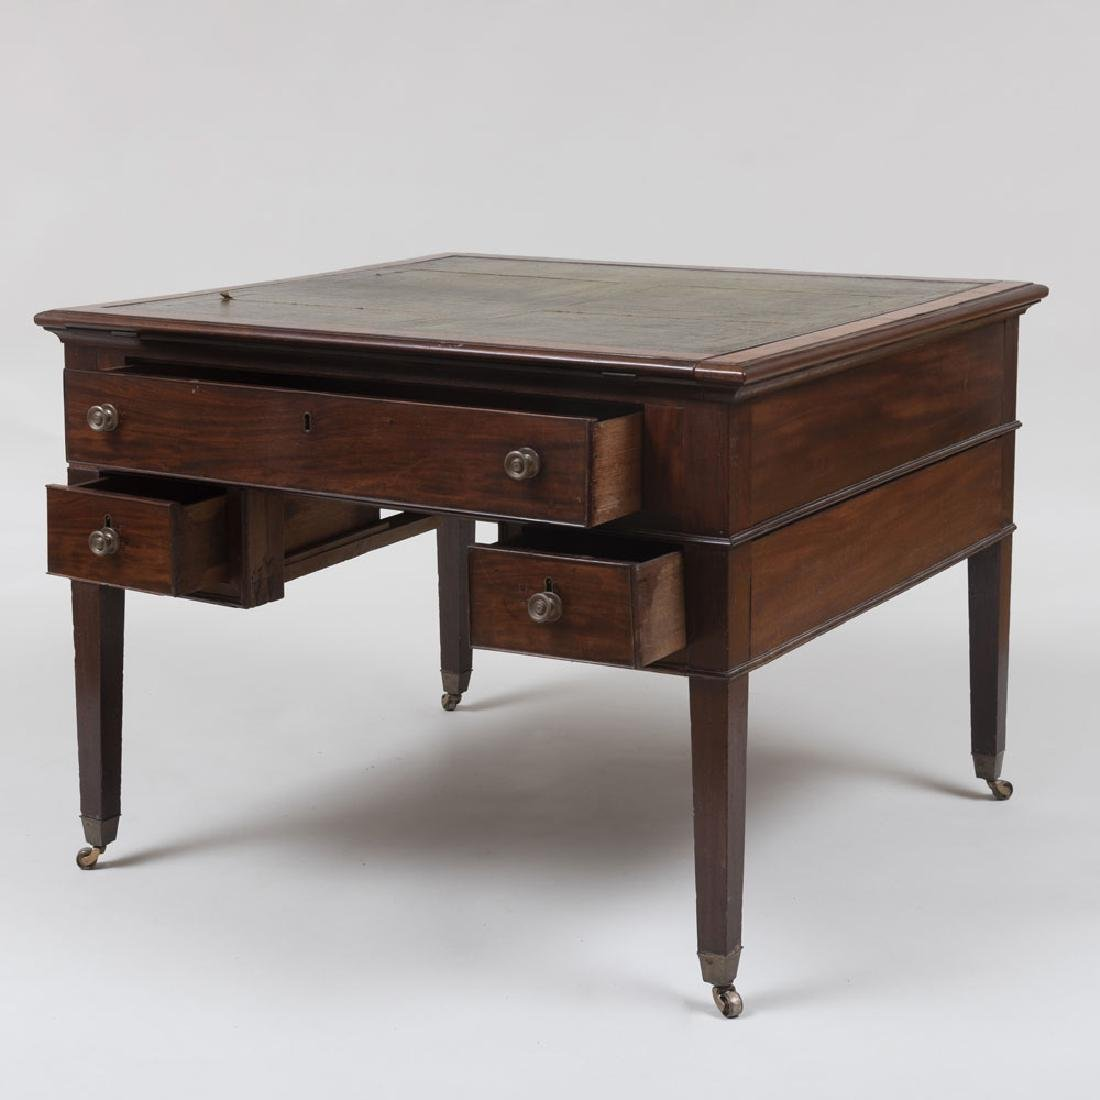 Late George III Mahogany Partner's Desk - 4